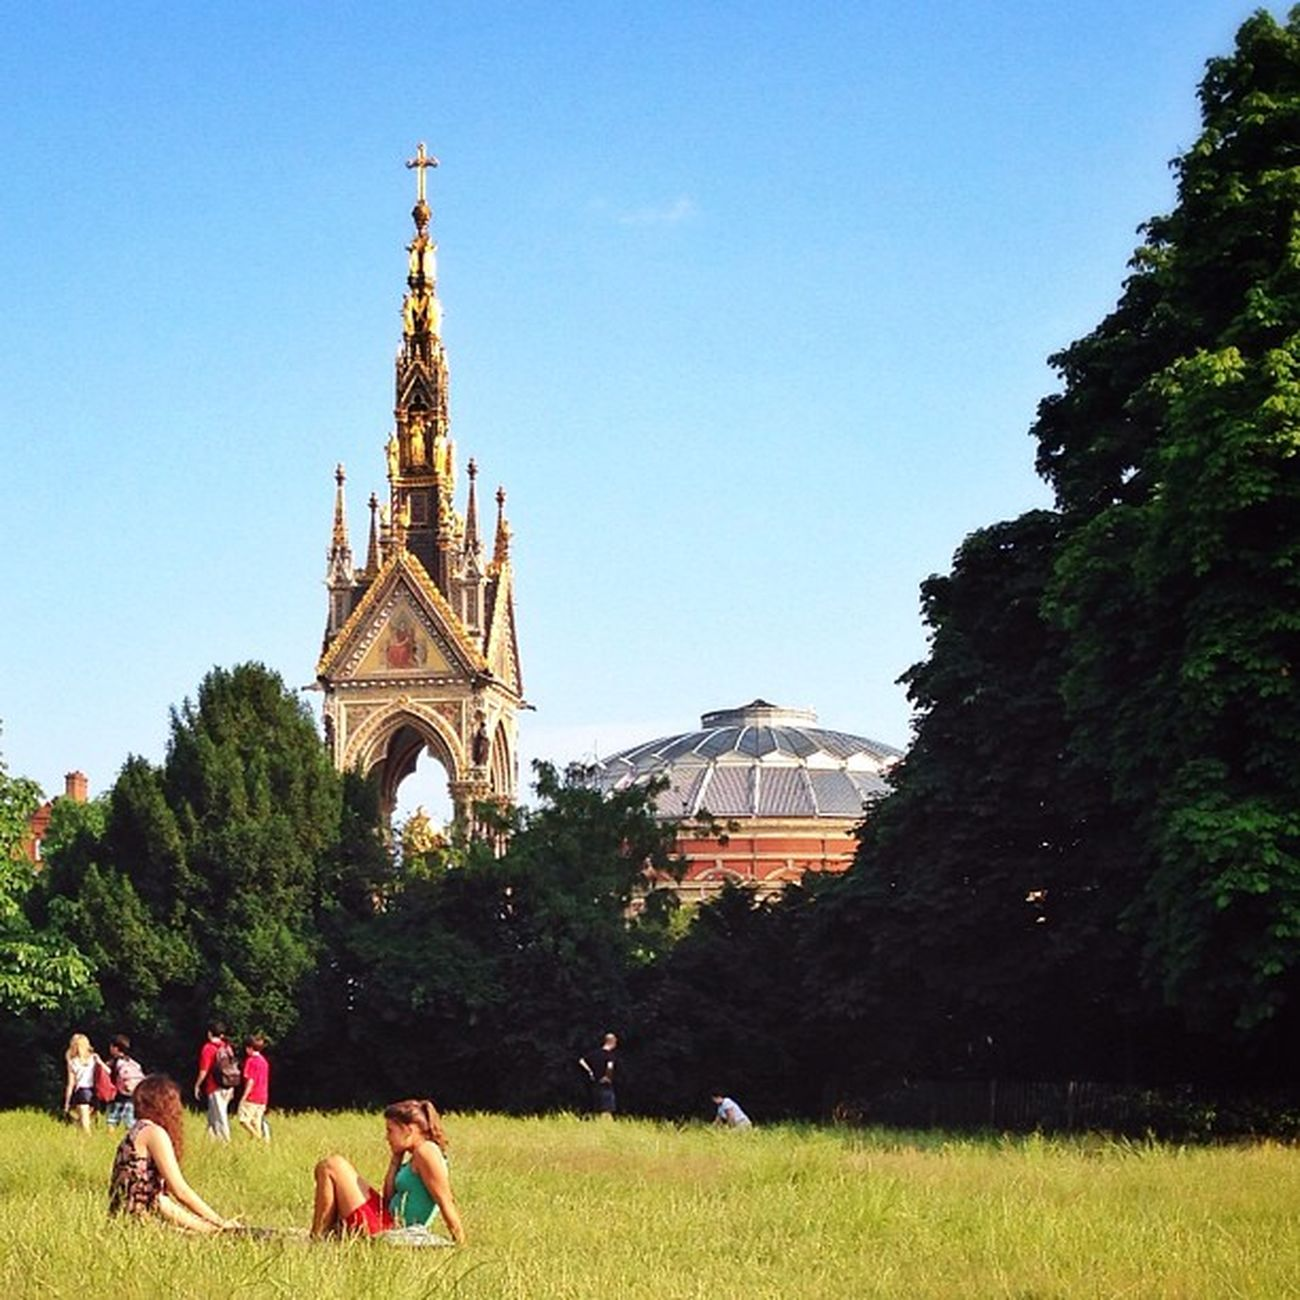 Relax in the #park ☀️?????☀️ You can see tower of #Albert memorial and also roof of Royal Albert Hall #alan_in_london #gf_uk #gang_family #igers_london #insta_london #london_only #thisislondon #ic_cities #ic_cities_london #ig_england #love_london #gi_uk Gi_uk Igers_london Ig_england Love_london Ic_cities_london Park Ig_london Albert Aauk Gang_family Londonpop Yourturnbritain Allshots_ London_only Ic_cities Gf_uk Alan_in_london Insta_london Thisislondon